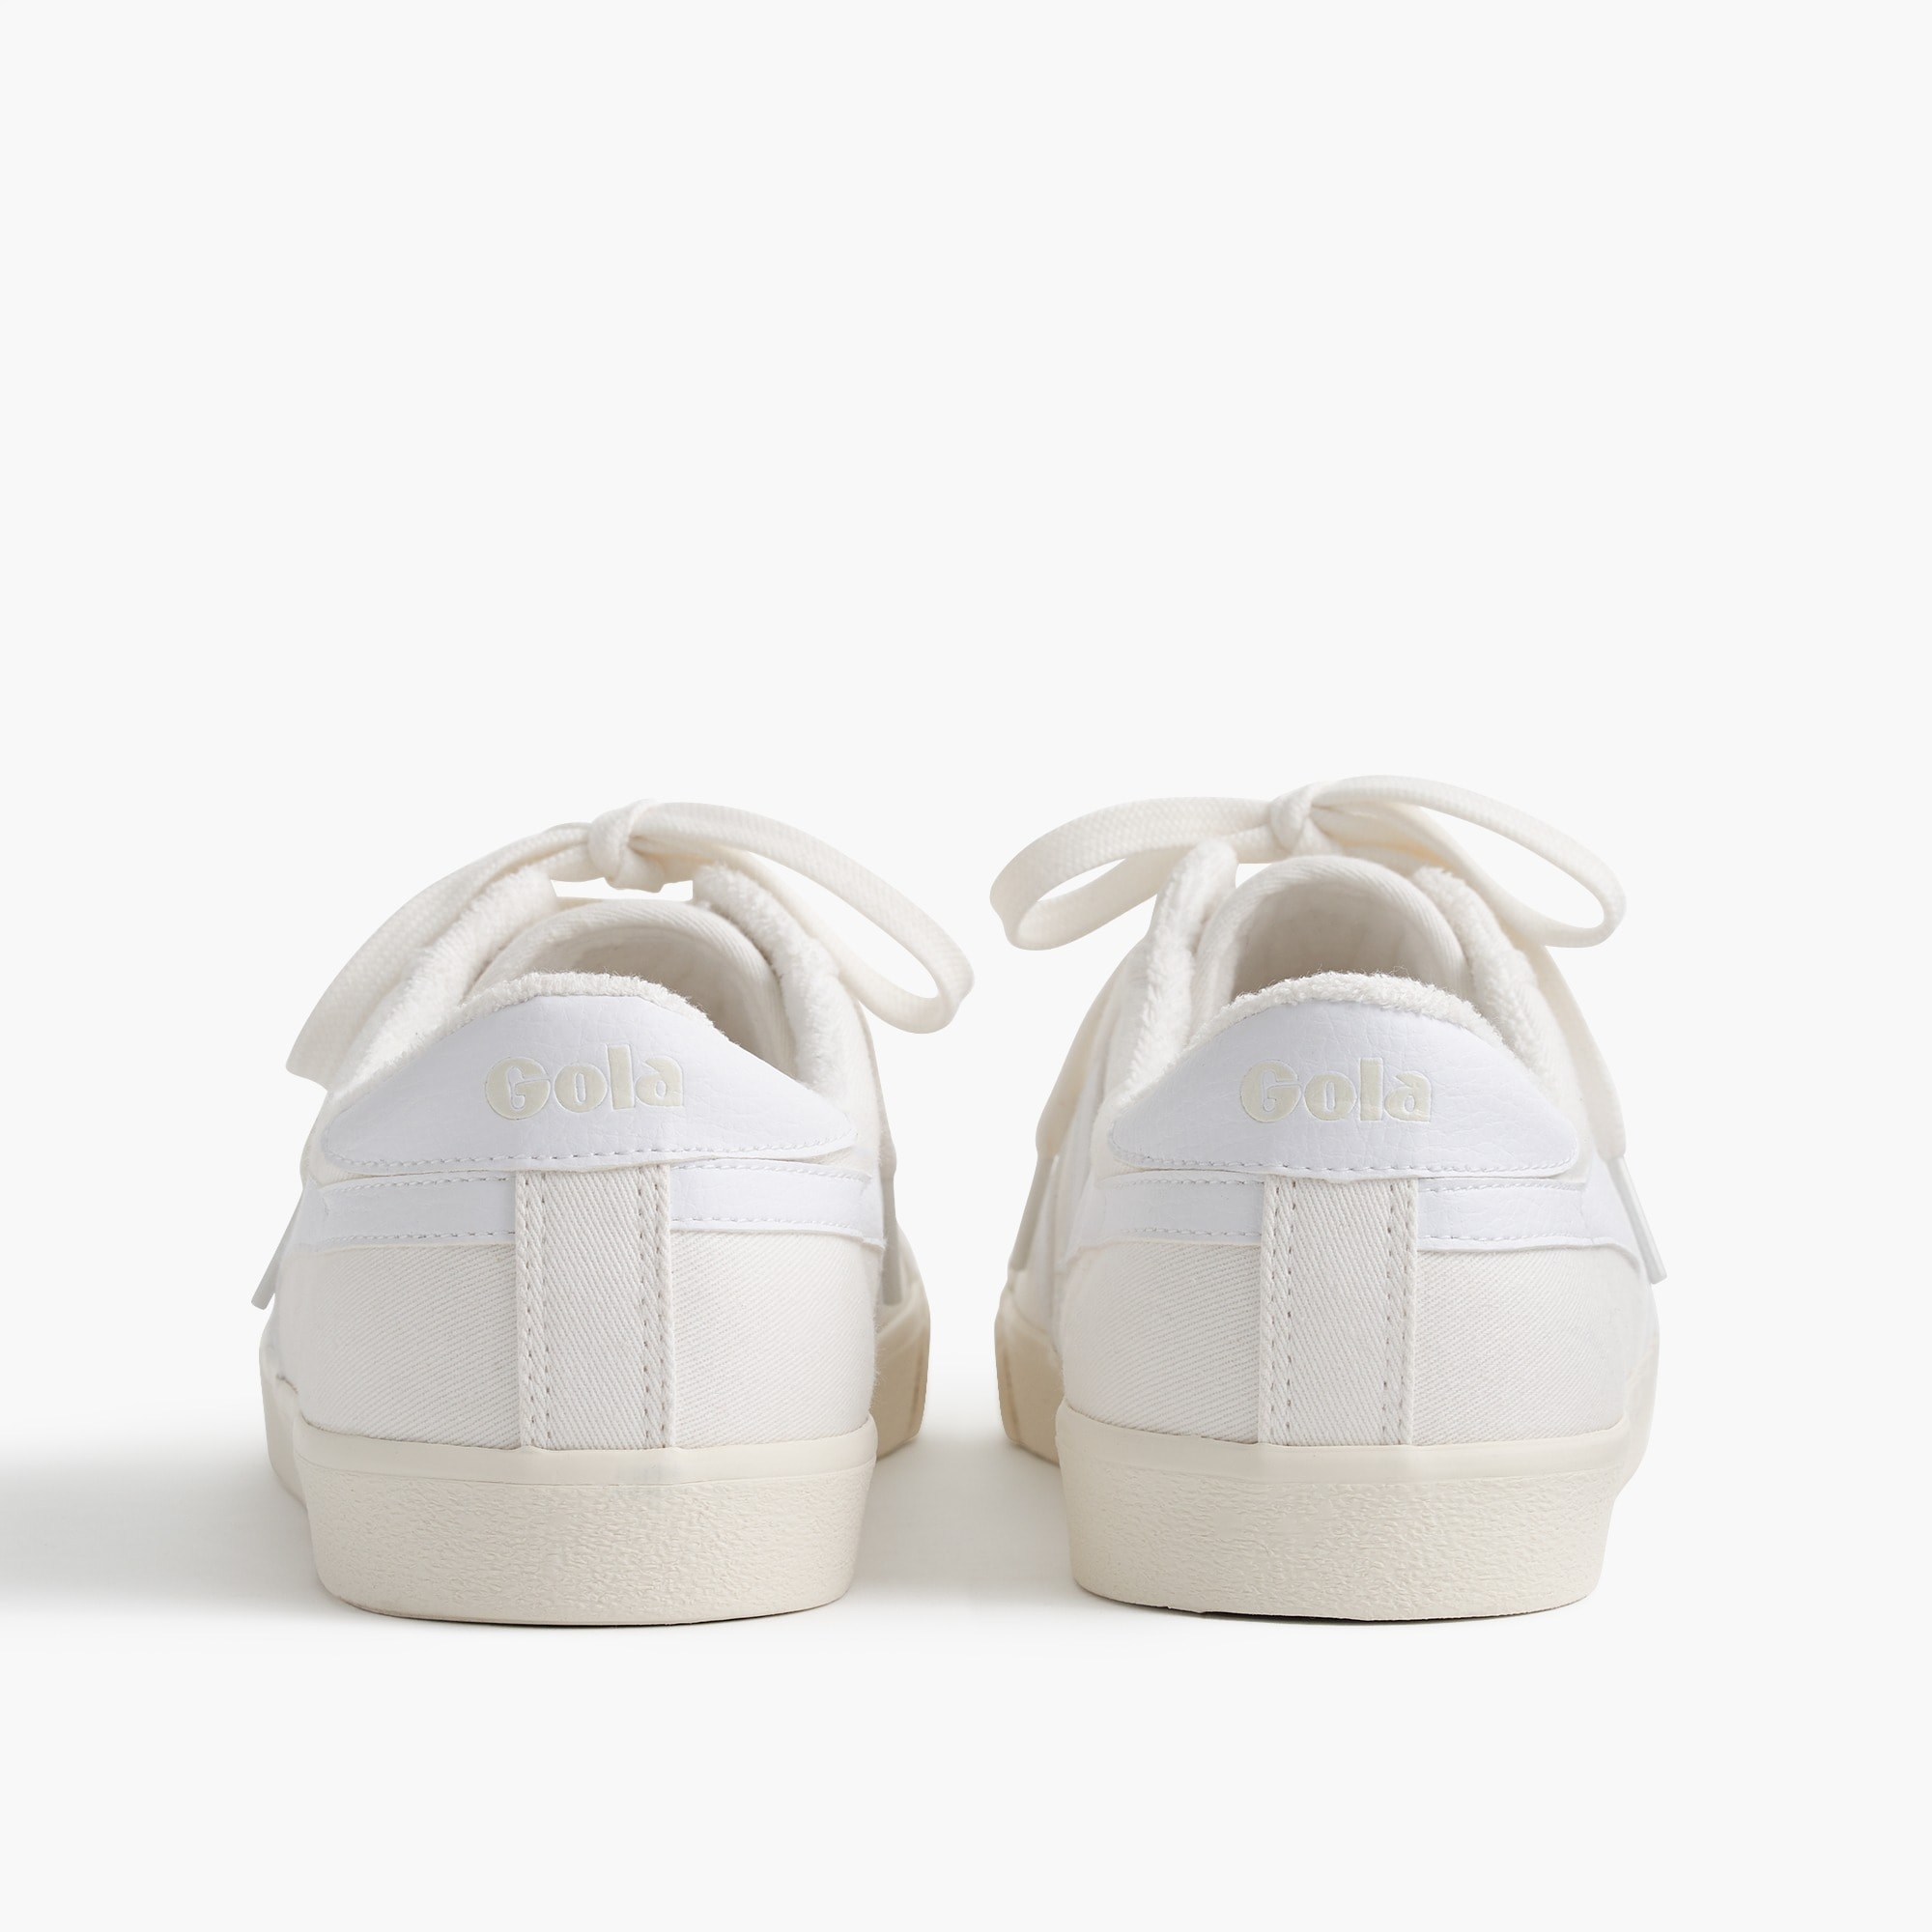 Image 4 for Gola® for J.Crew sneakers in white